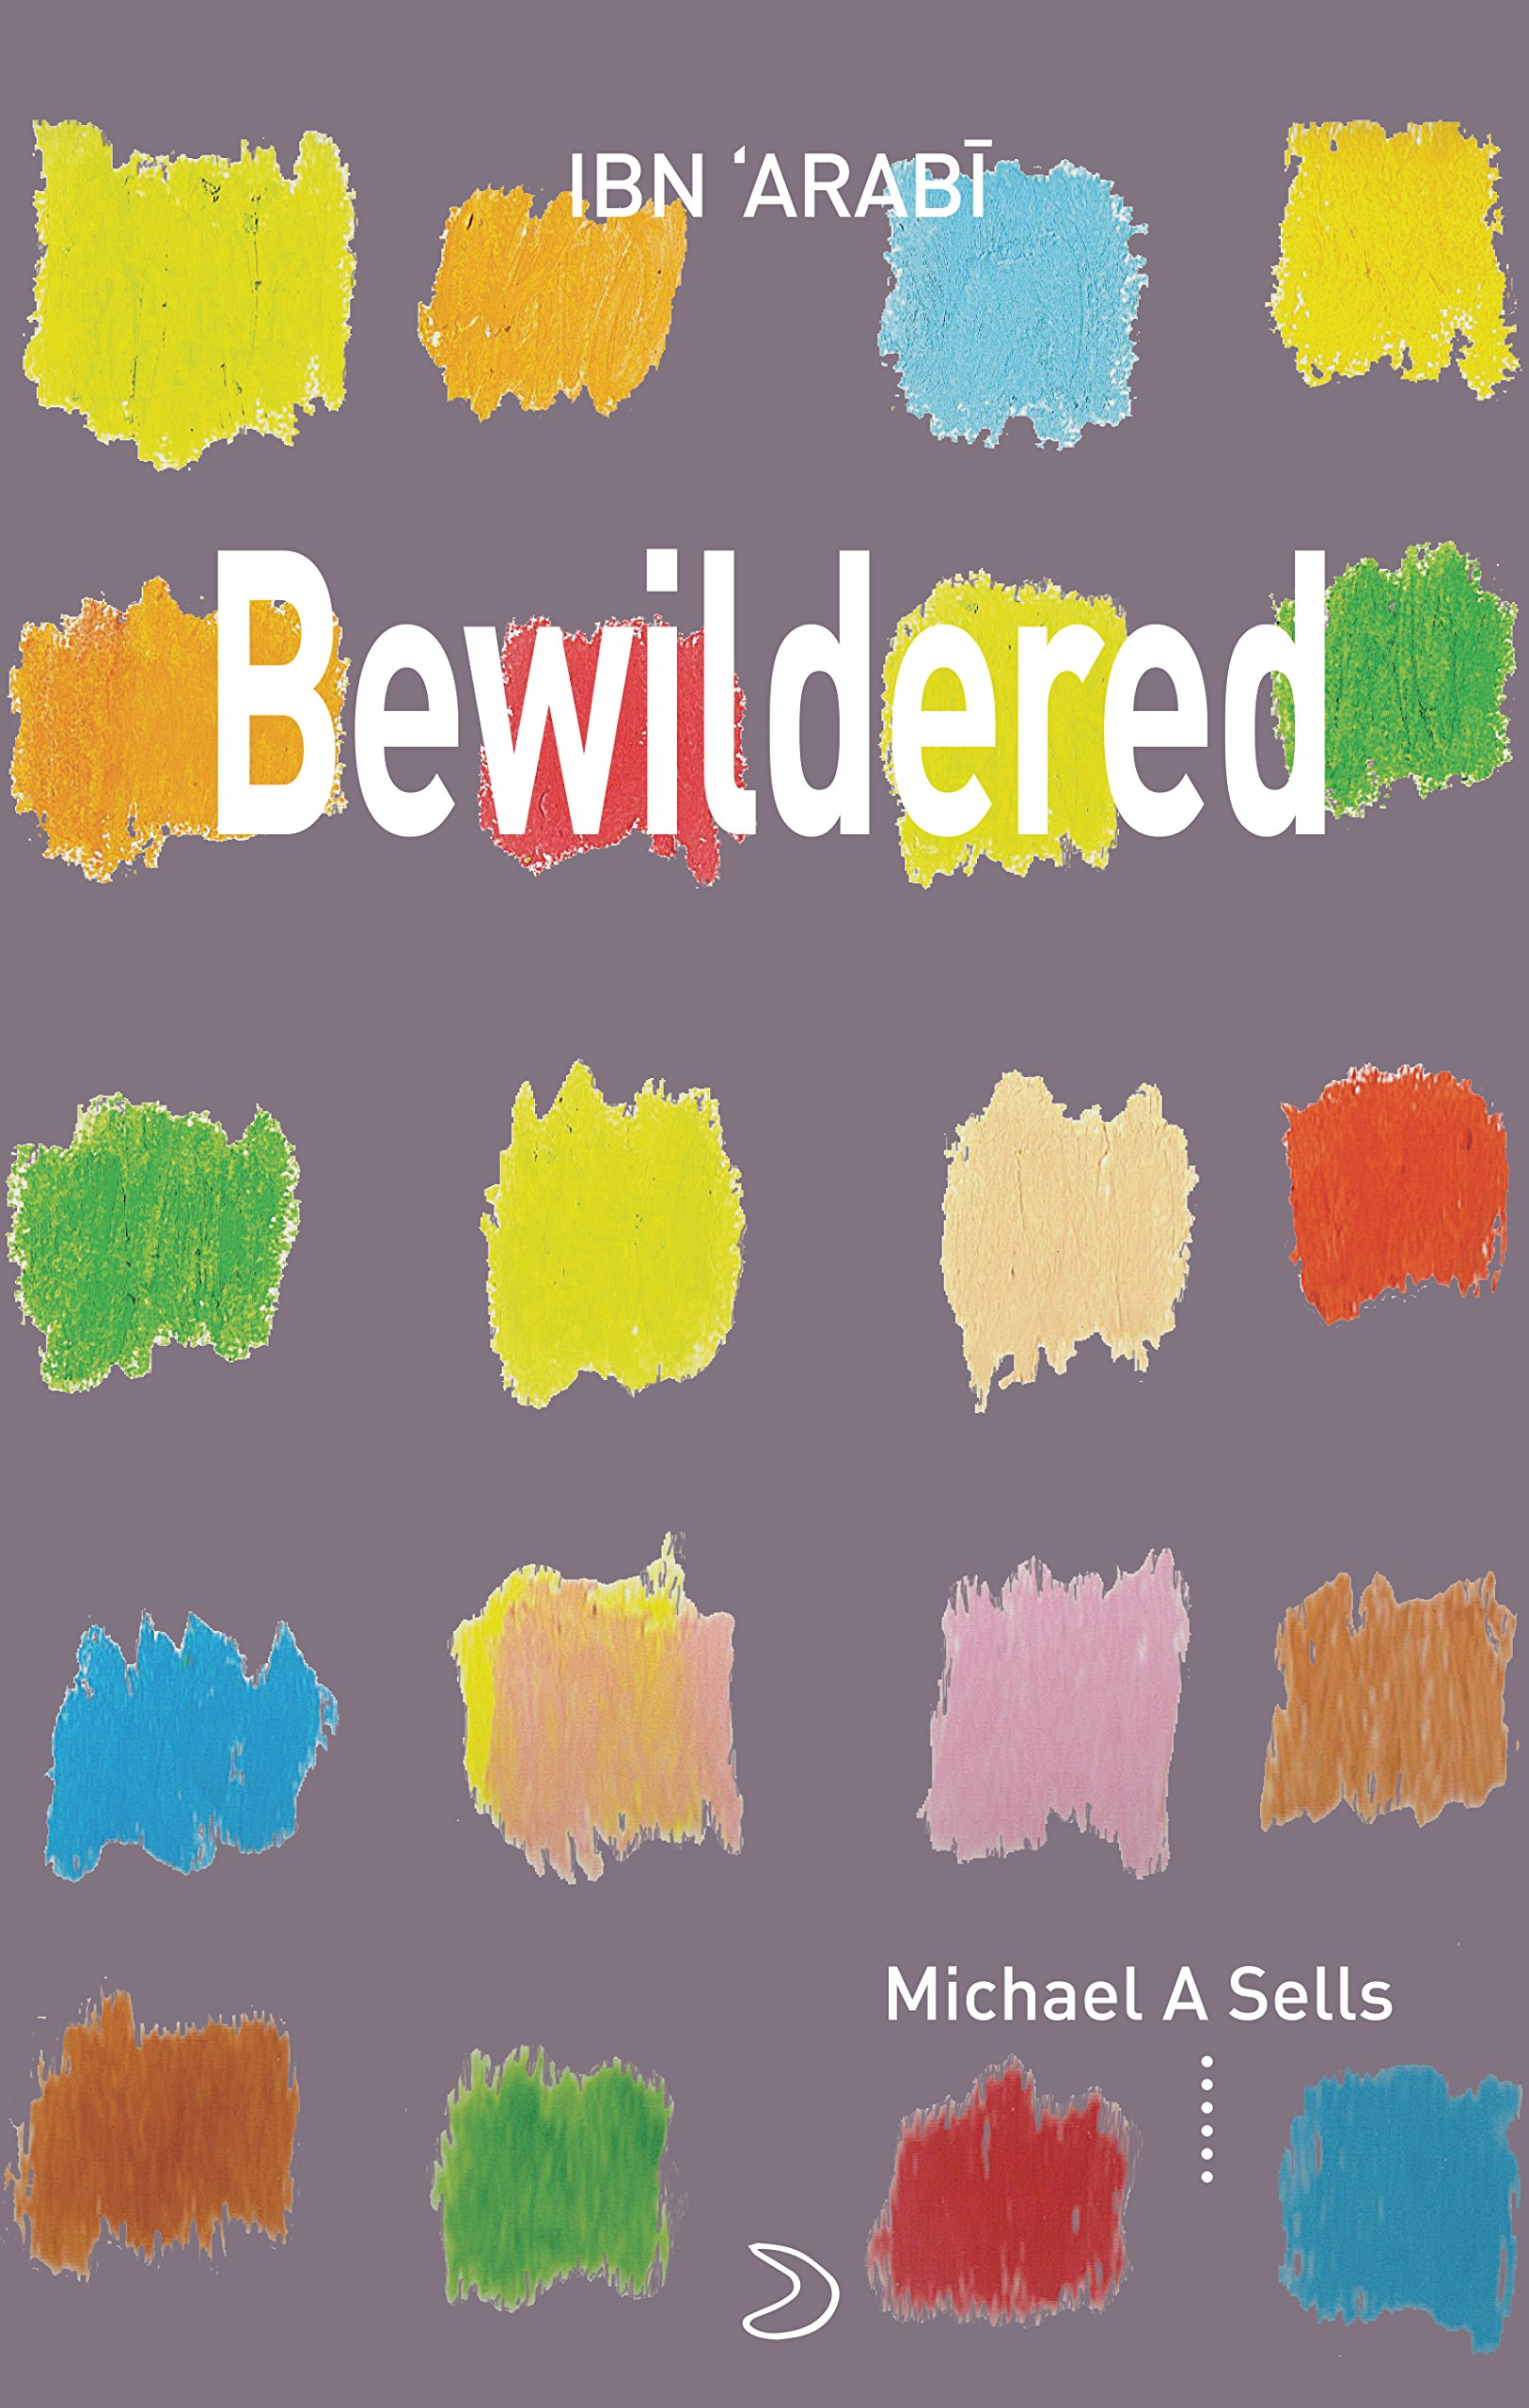 Bewildered: Love Poems from Translation of Desires, Al-'Arabi, Muhyiddin Ibn